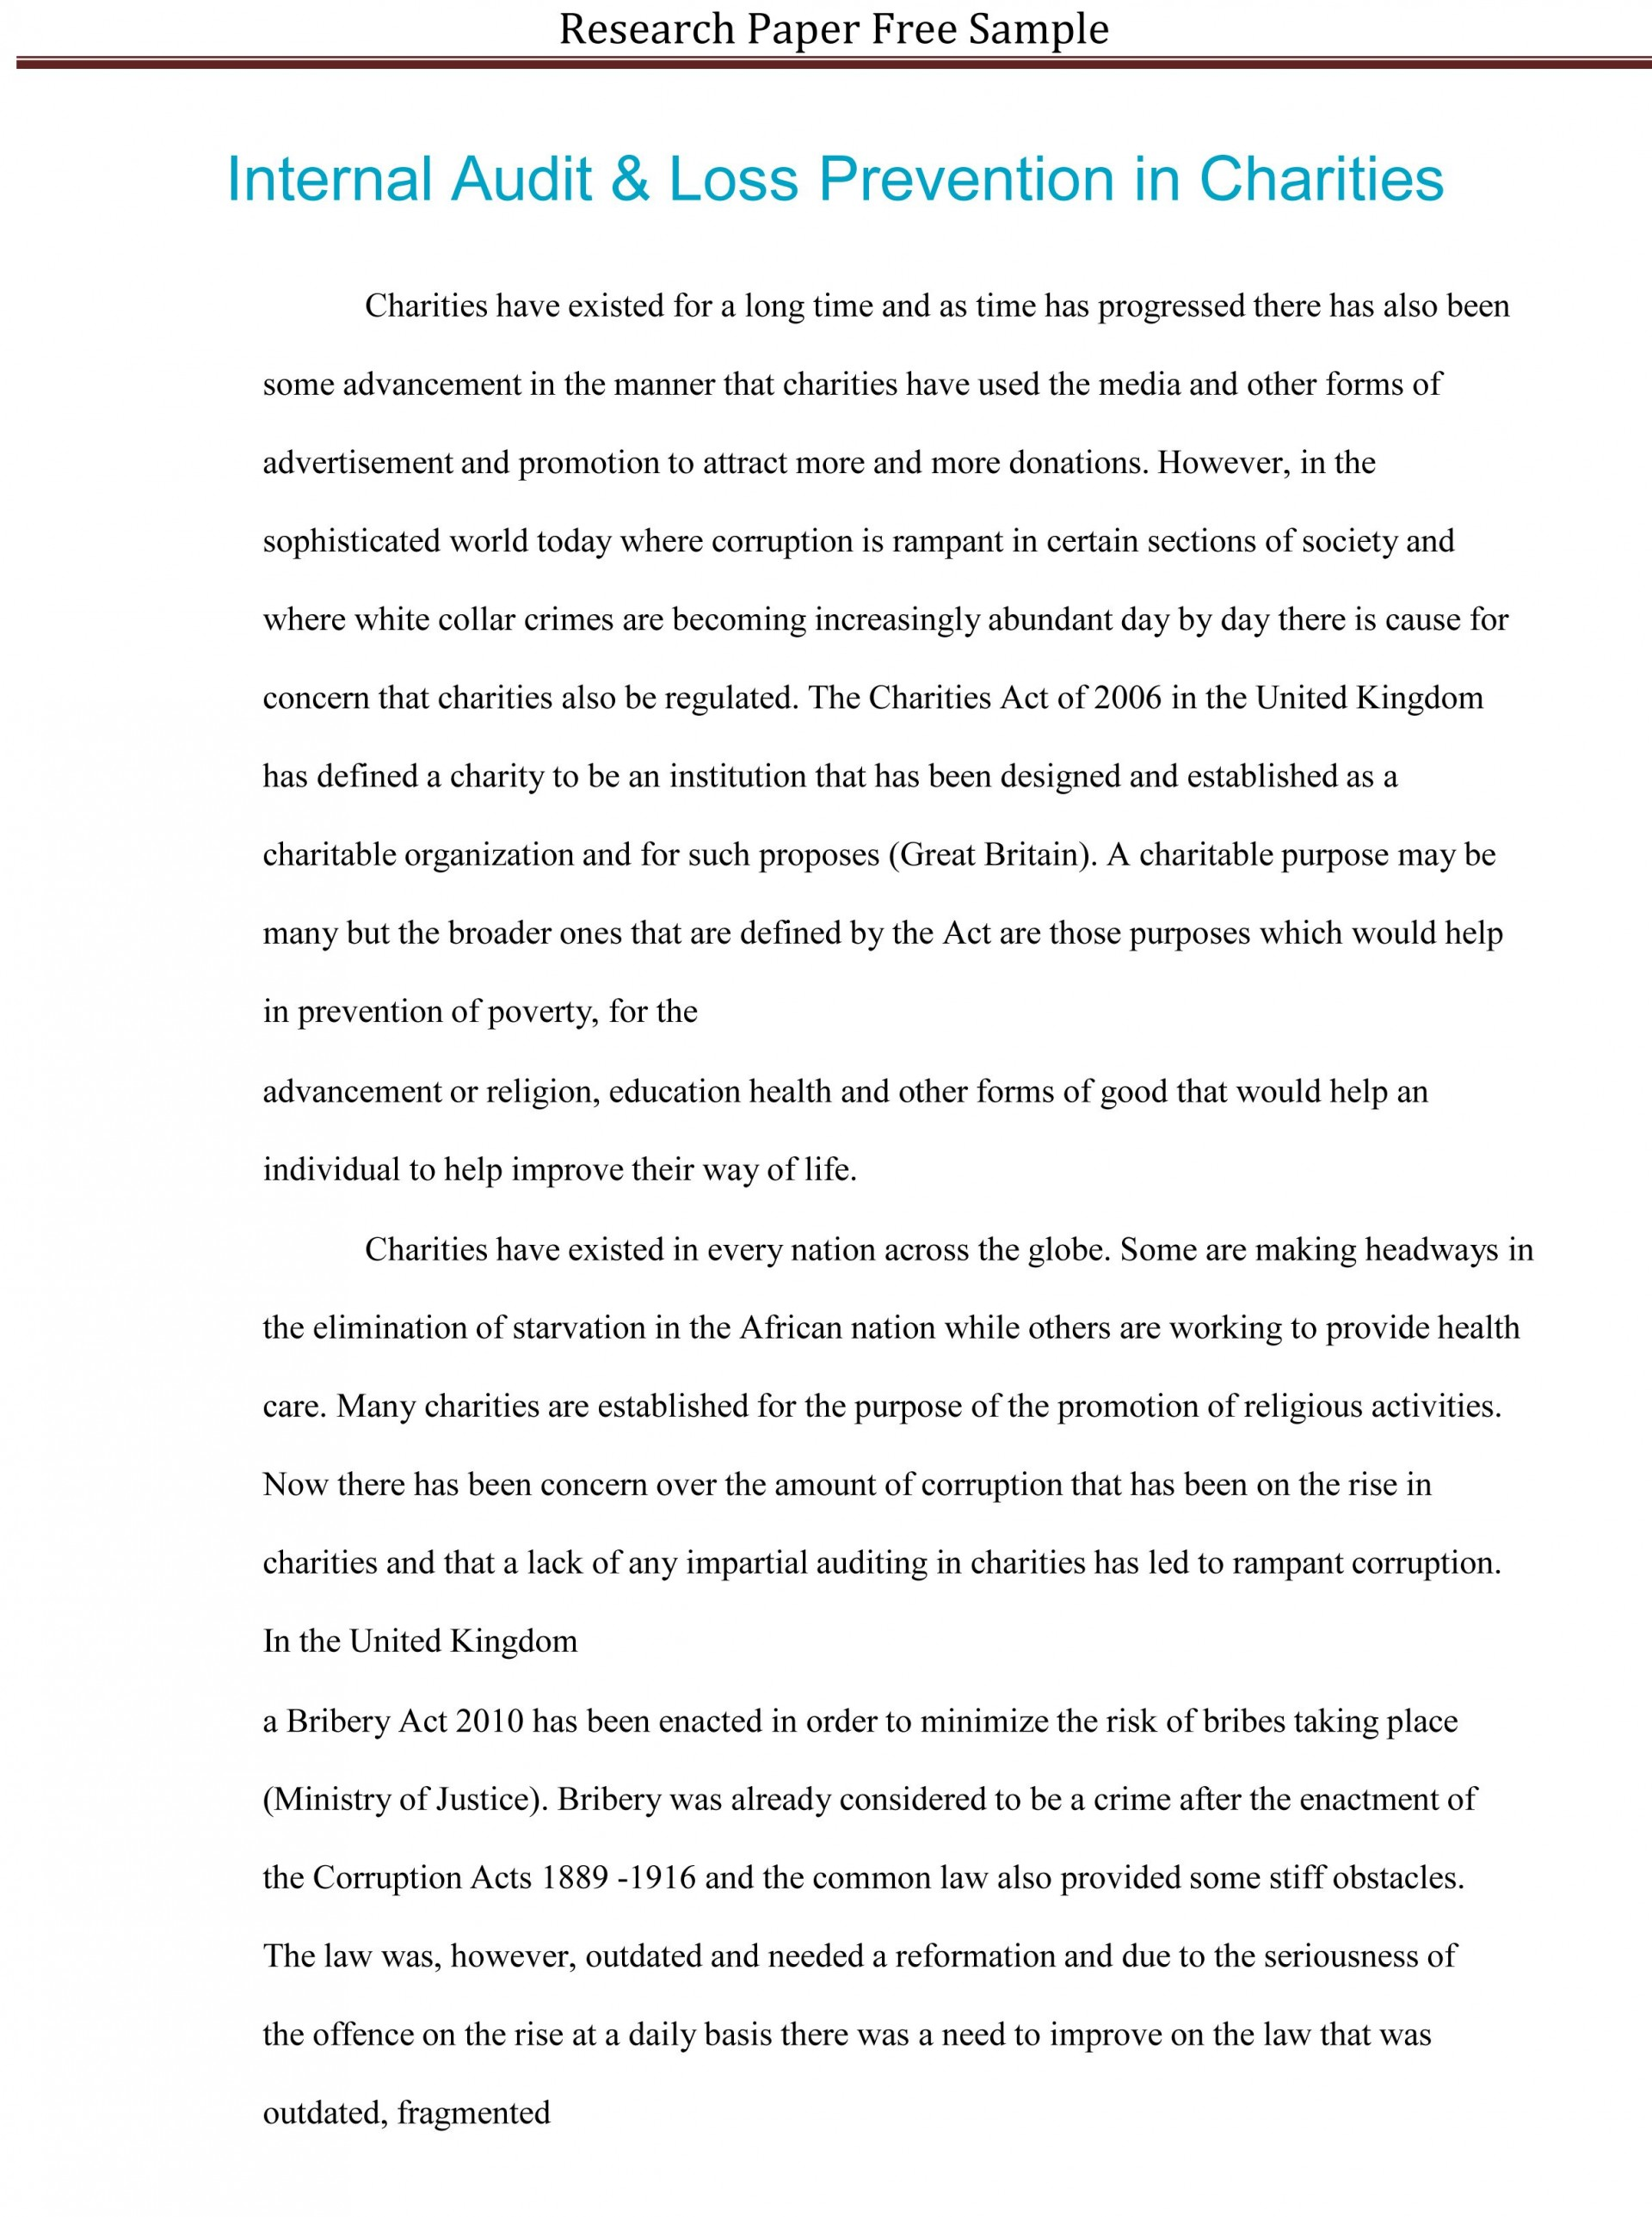 004 Research Paper Examples For College Impressive Sample In The Philippines Topics Students 1920